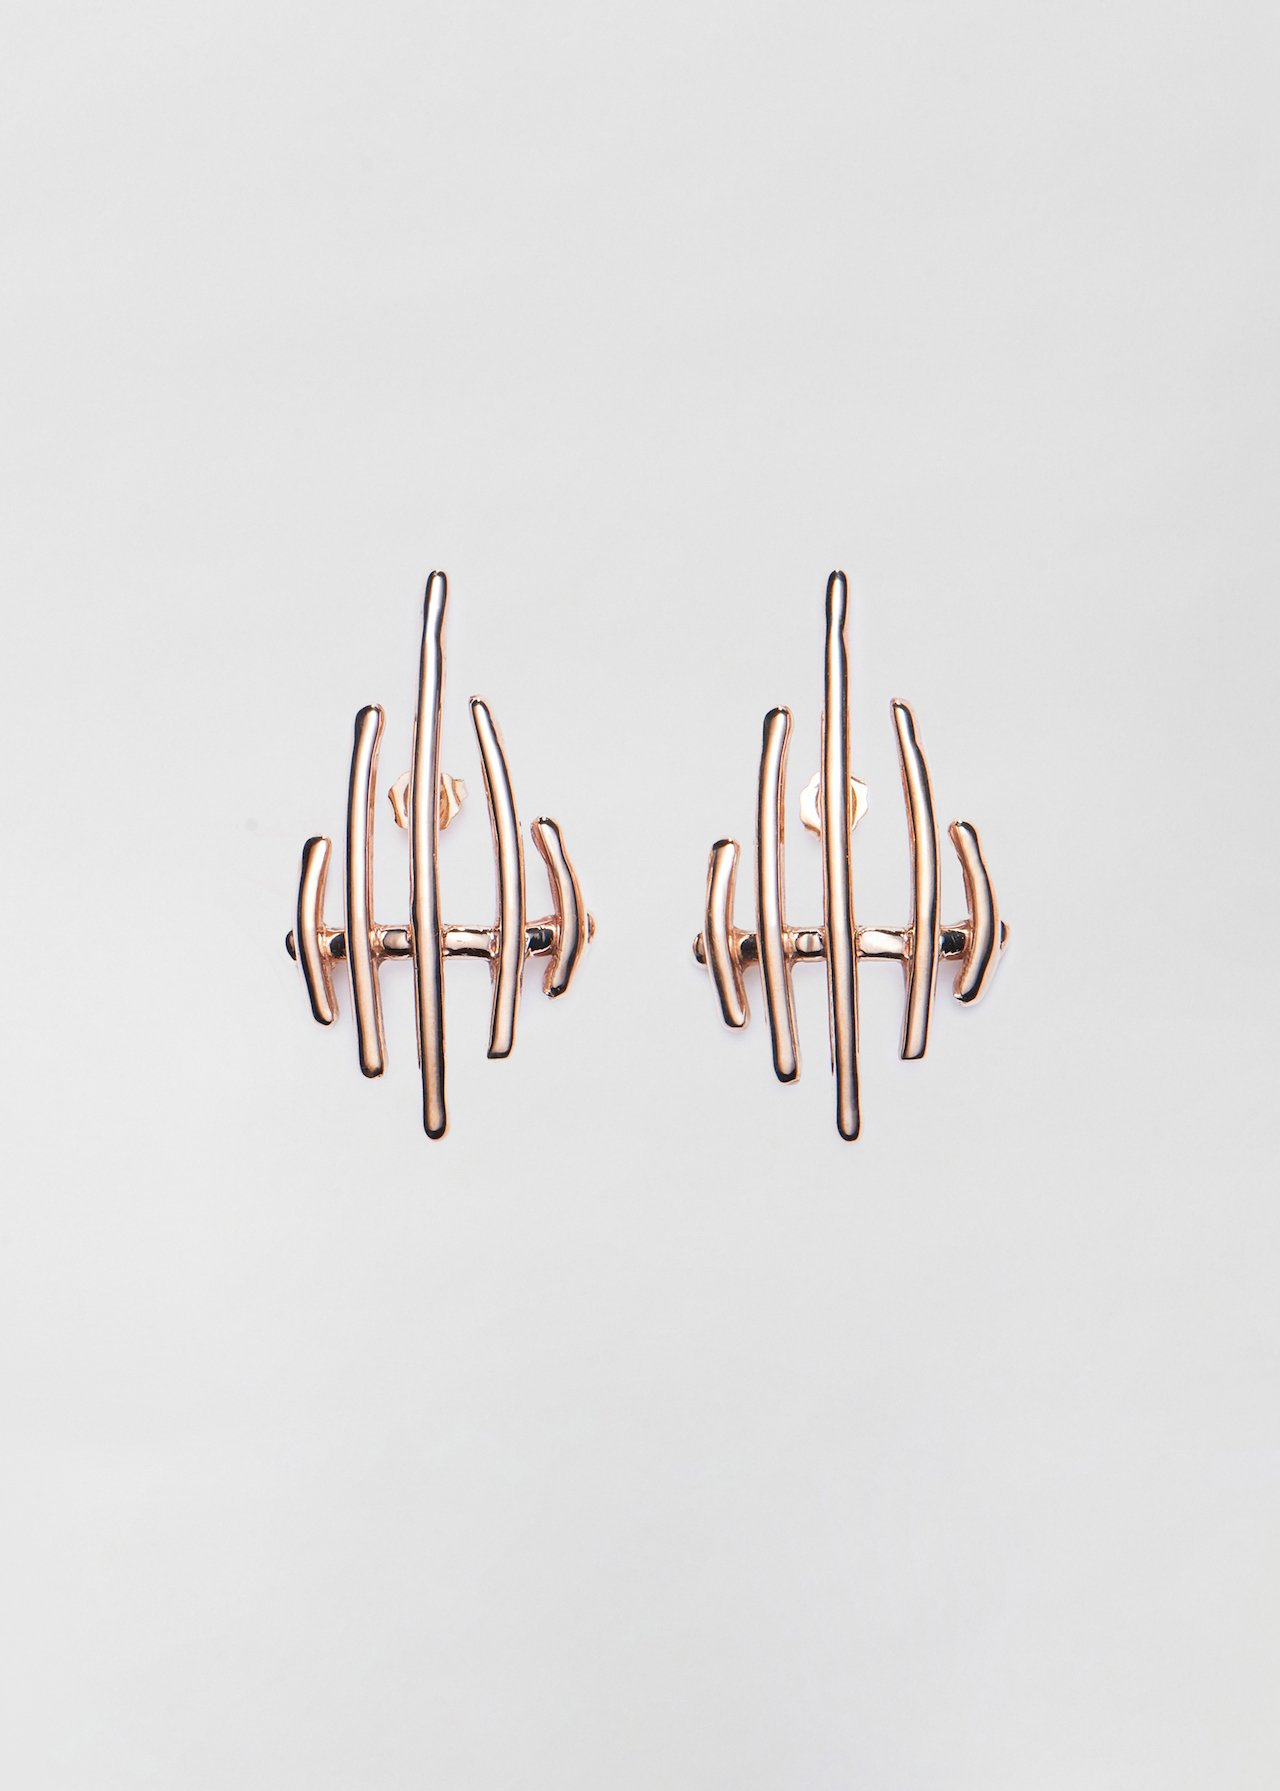 Sculptural Earrings in Bronze - Co Collections